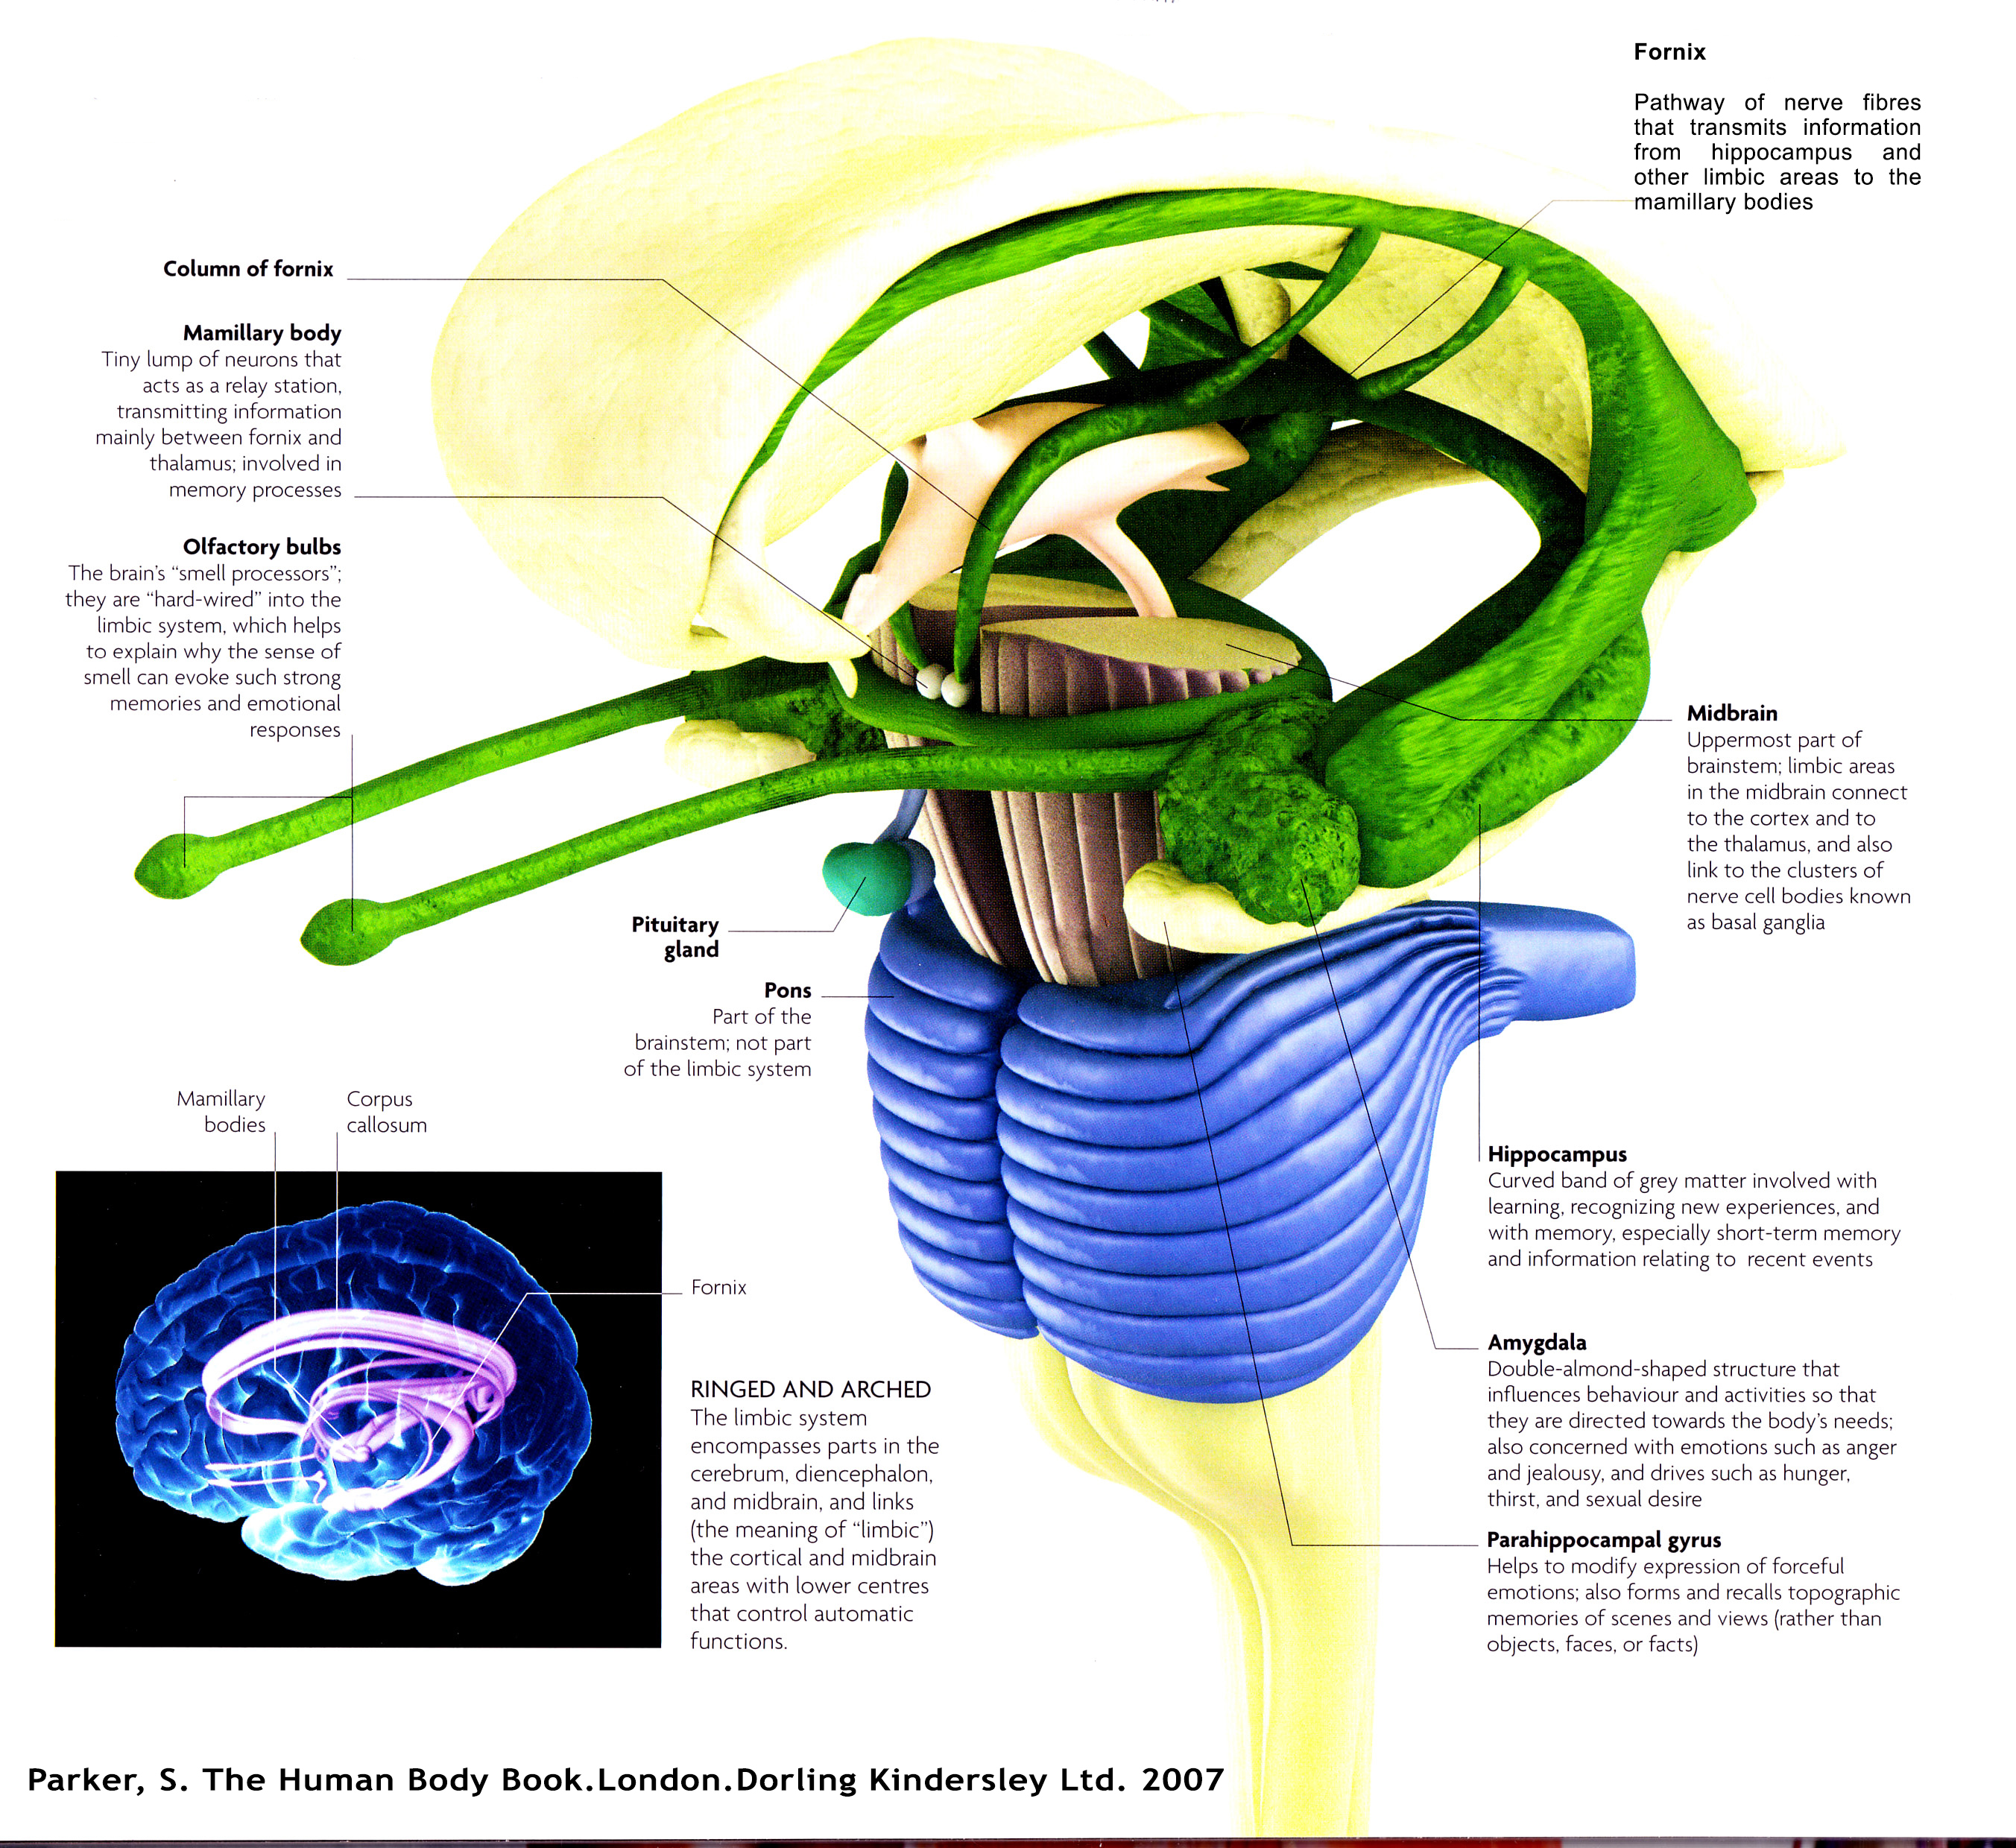 the limbic system diagram pathways of mine  d Function of Limbic System Brain Olfactory Bulb